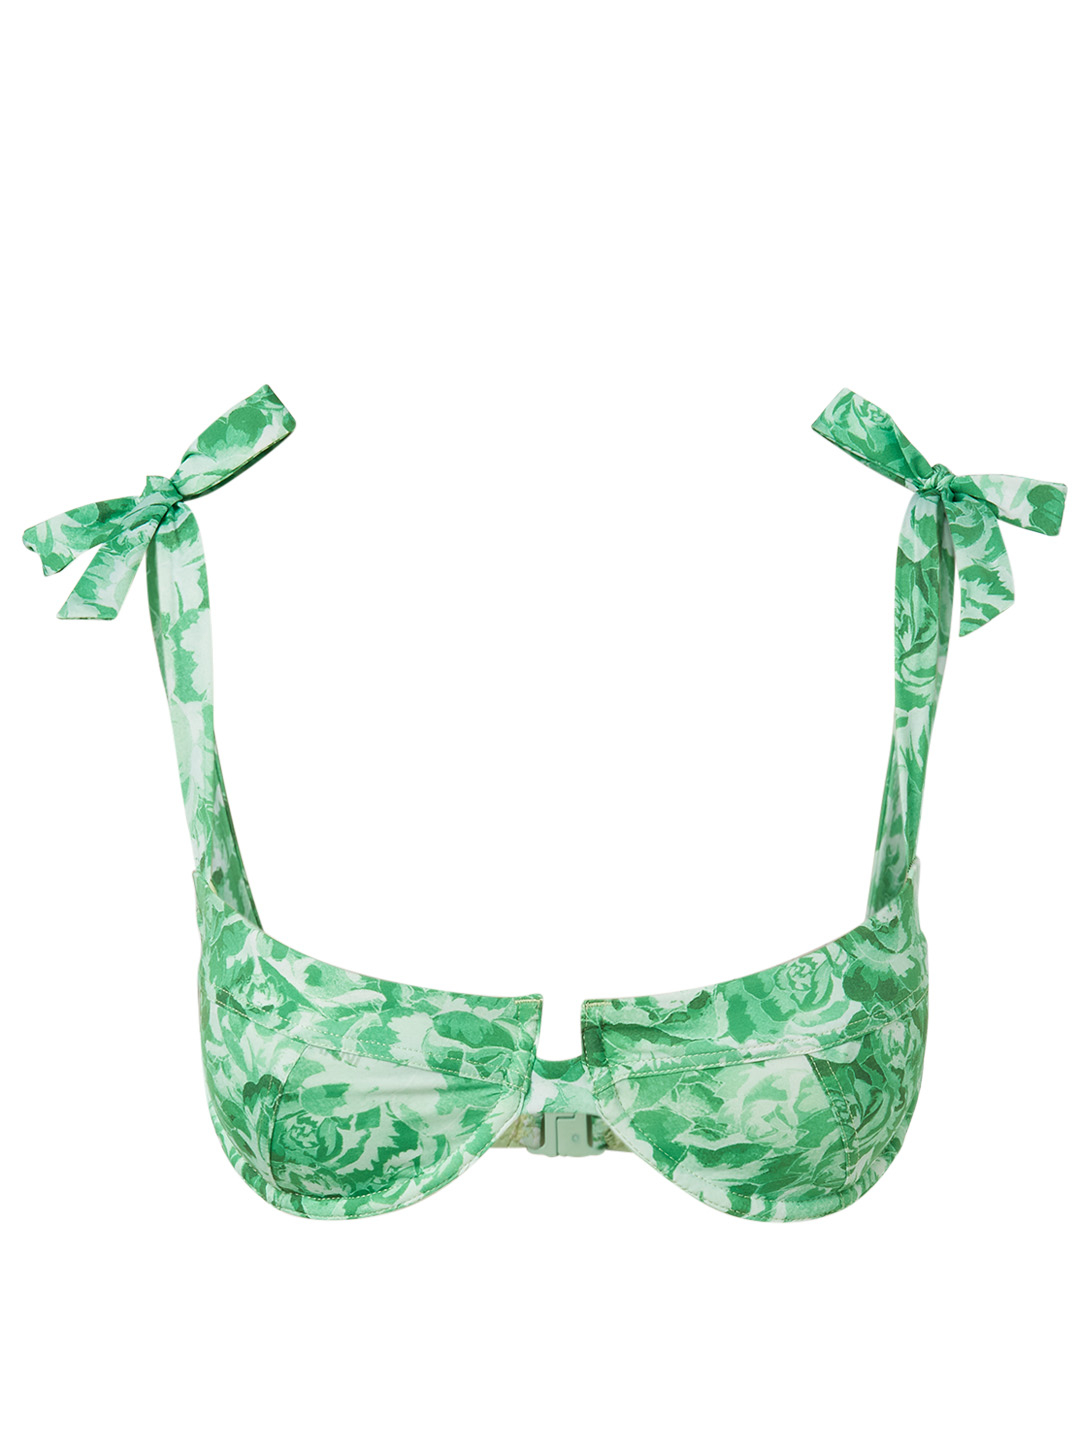 GANNI Underwire Bikini Top In Floral Print Women's Green